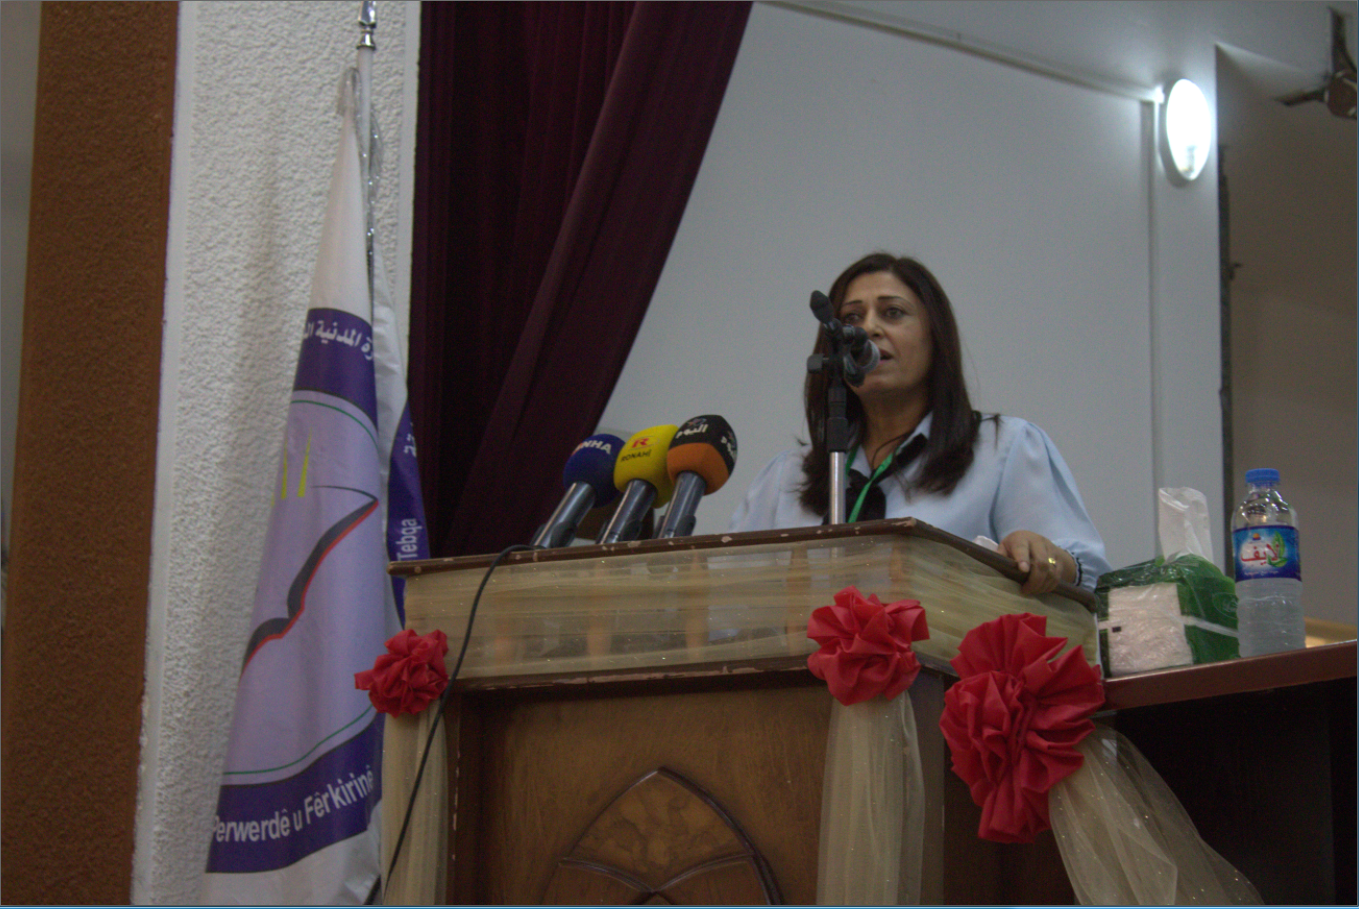 Amina Omer: Agreements which does not include MSD do not represent us